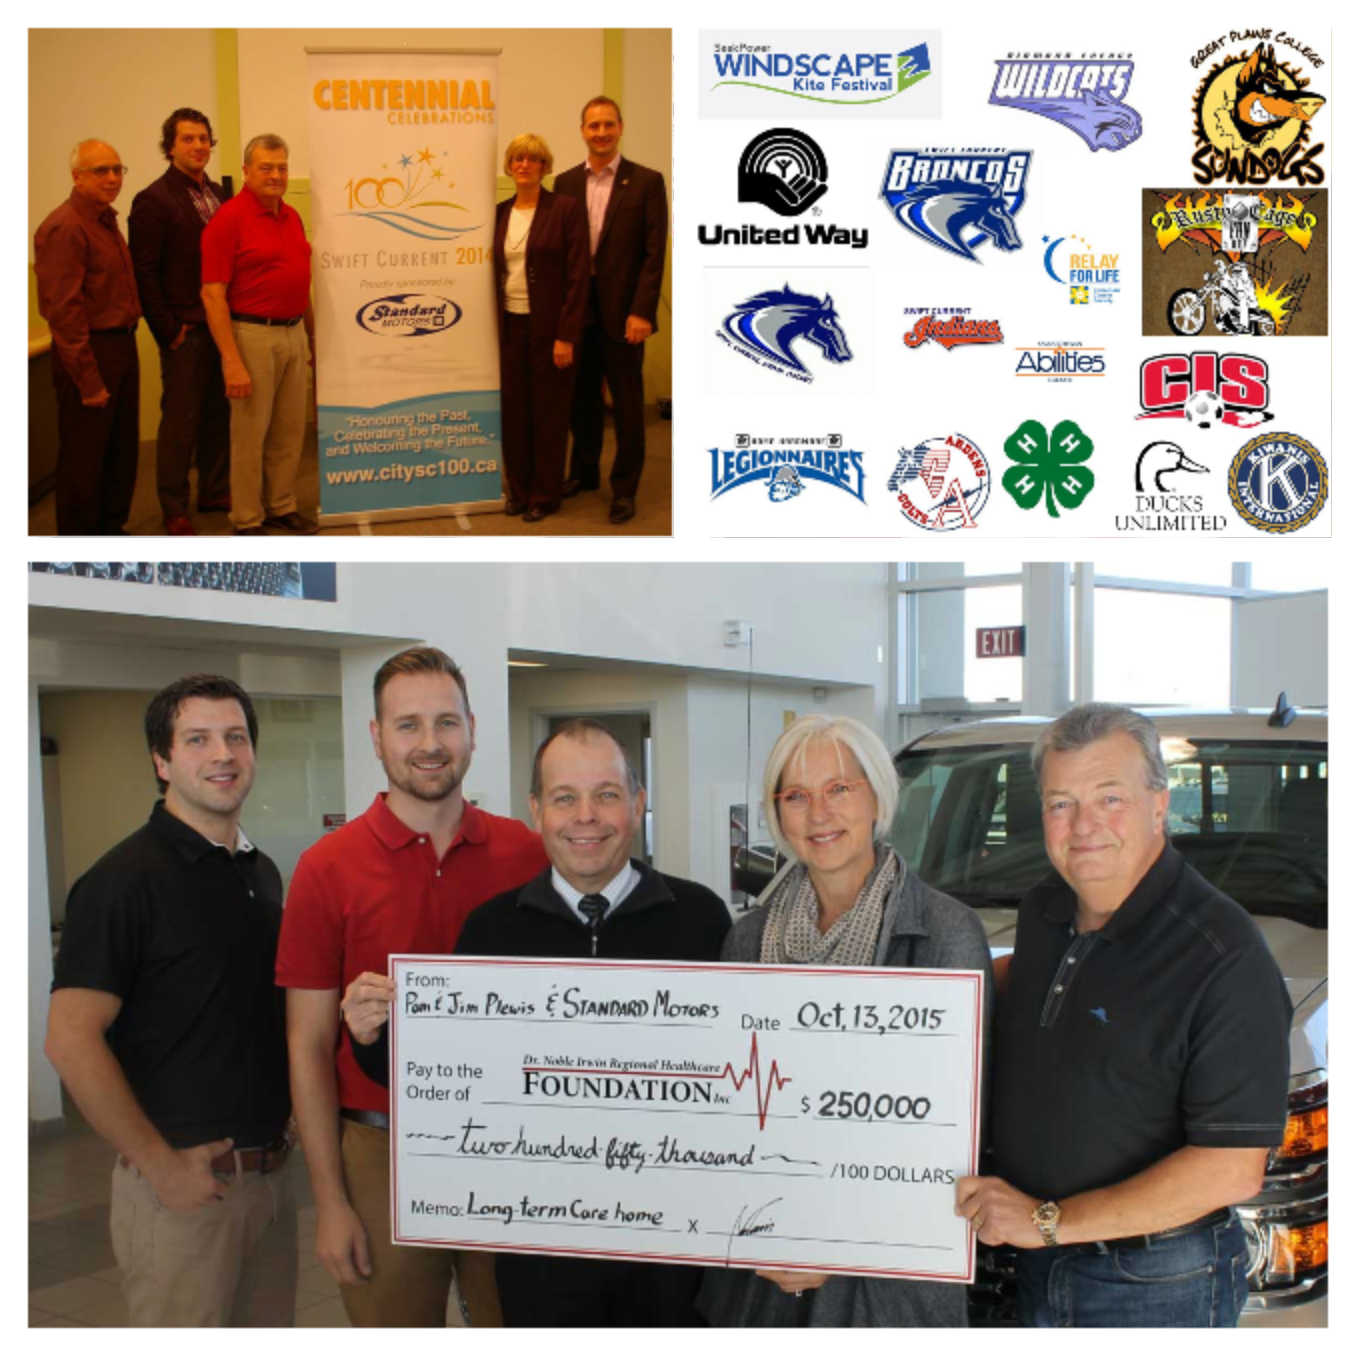 Collage of Charity work and logos